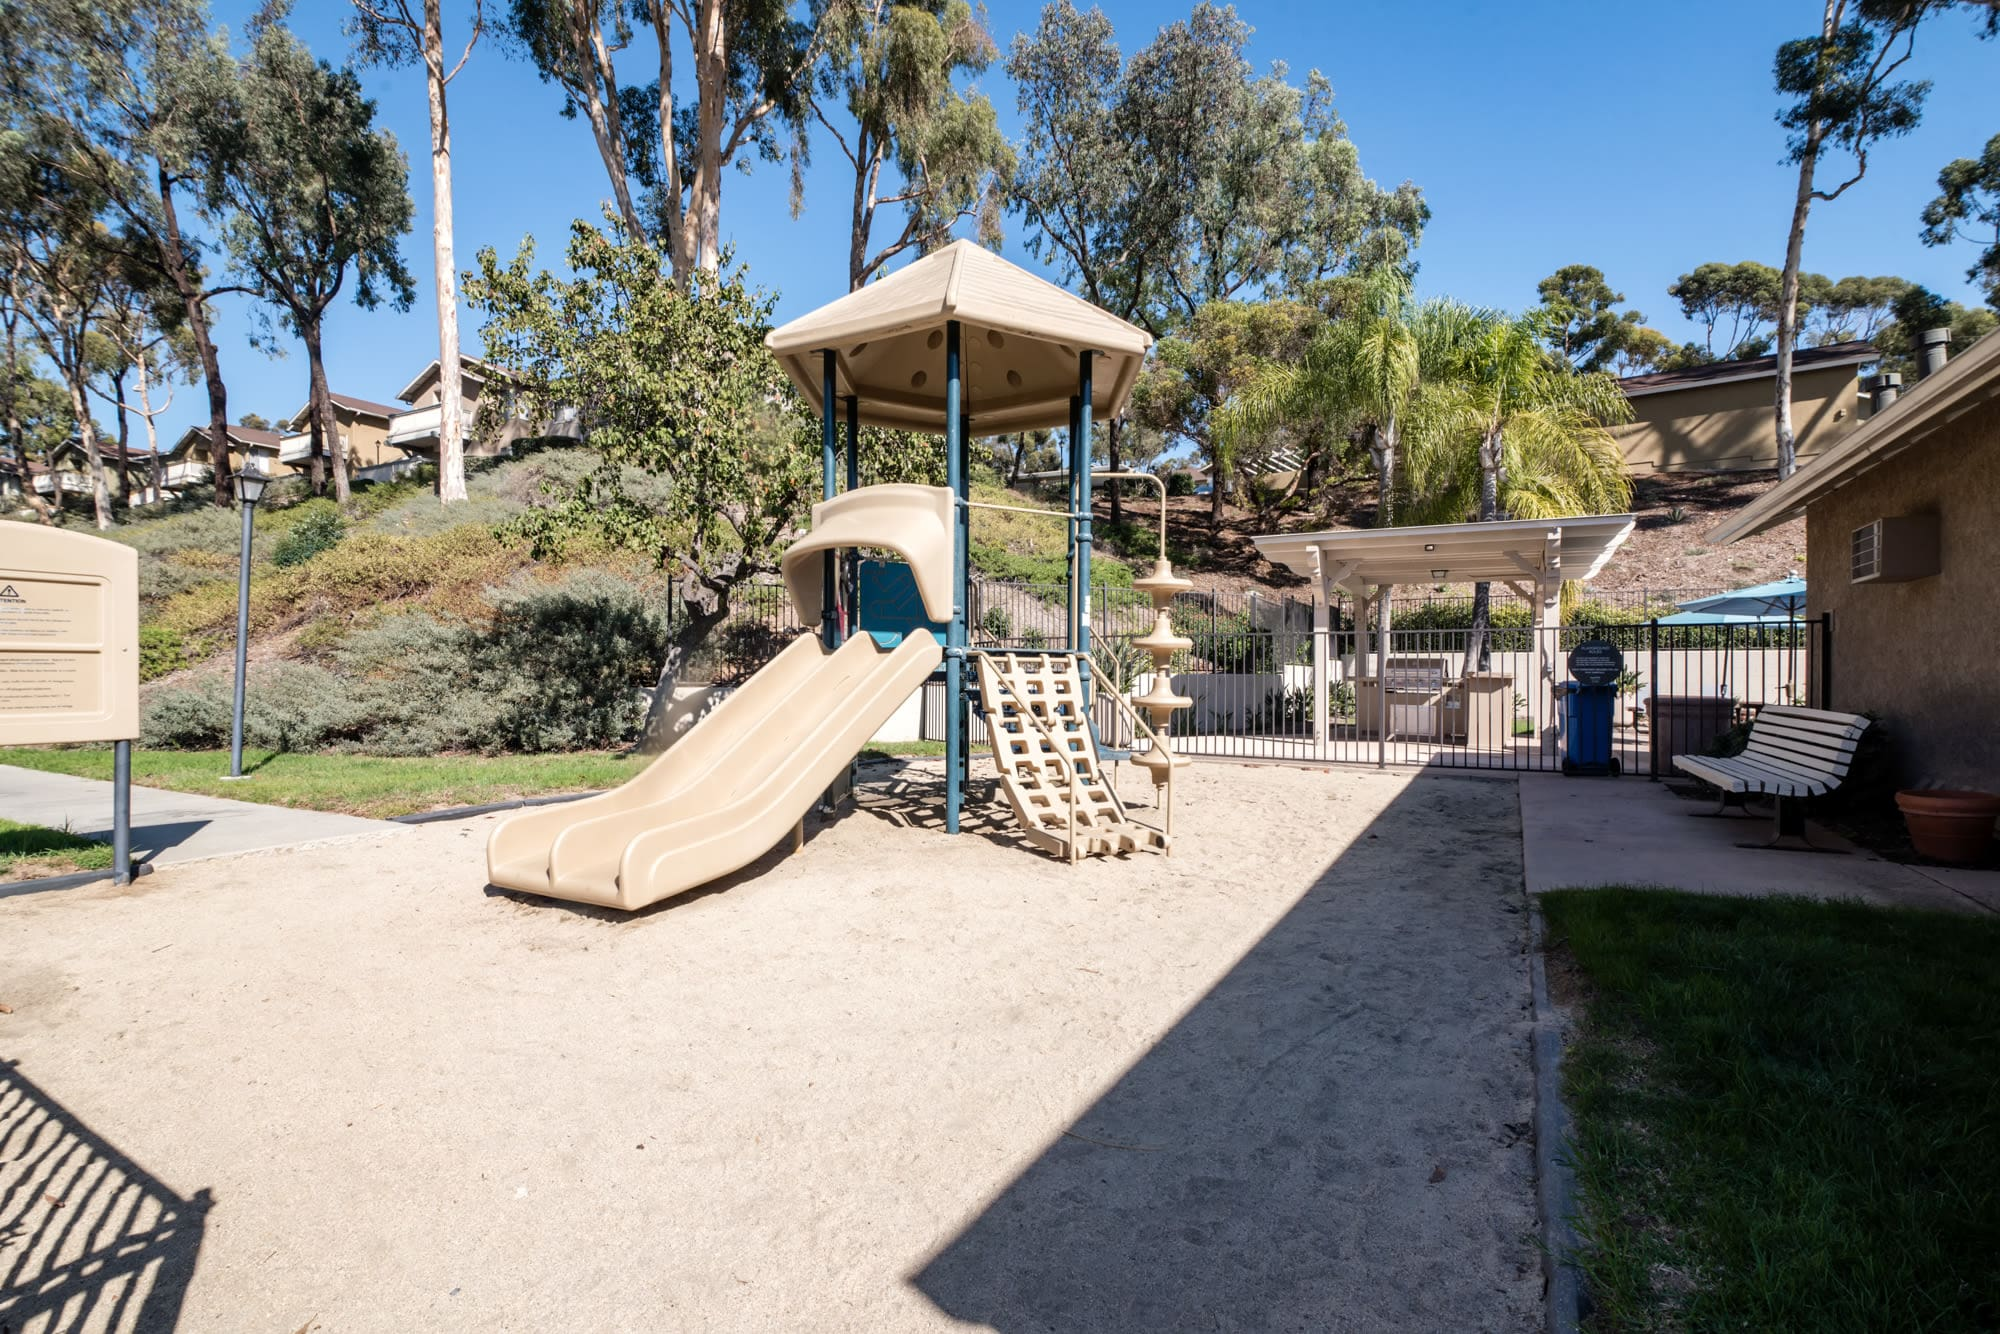 Playground at Lakeview Village Apartments in Spring Valley, California